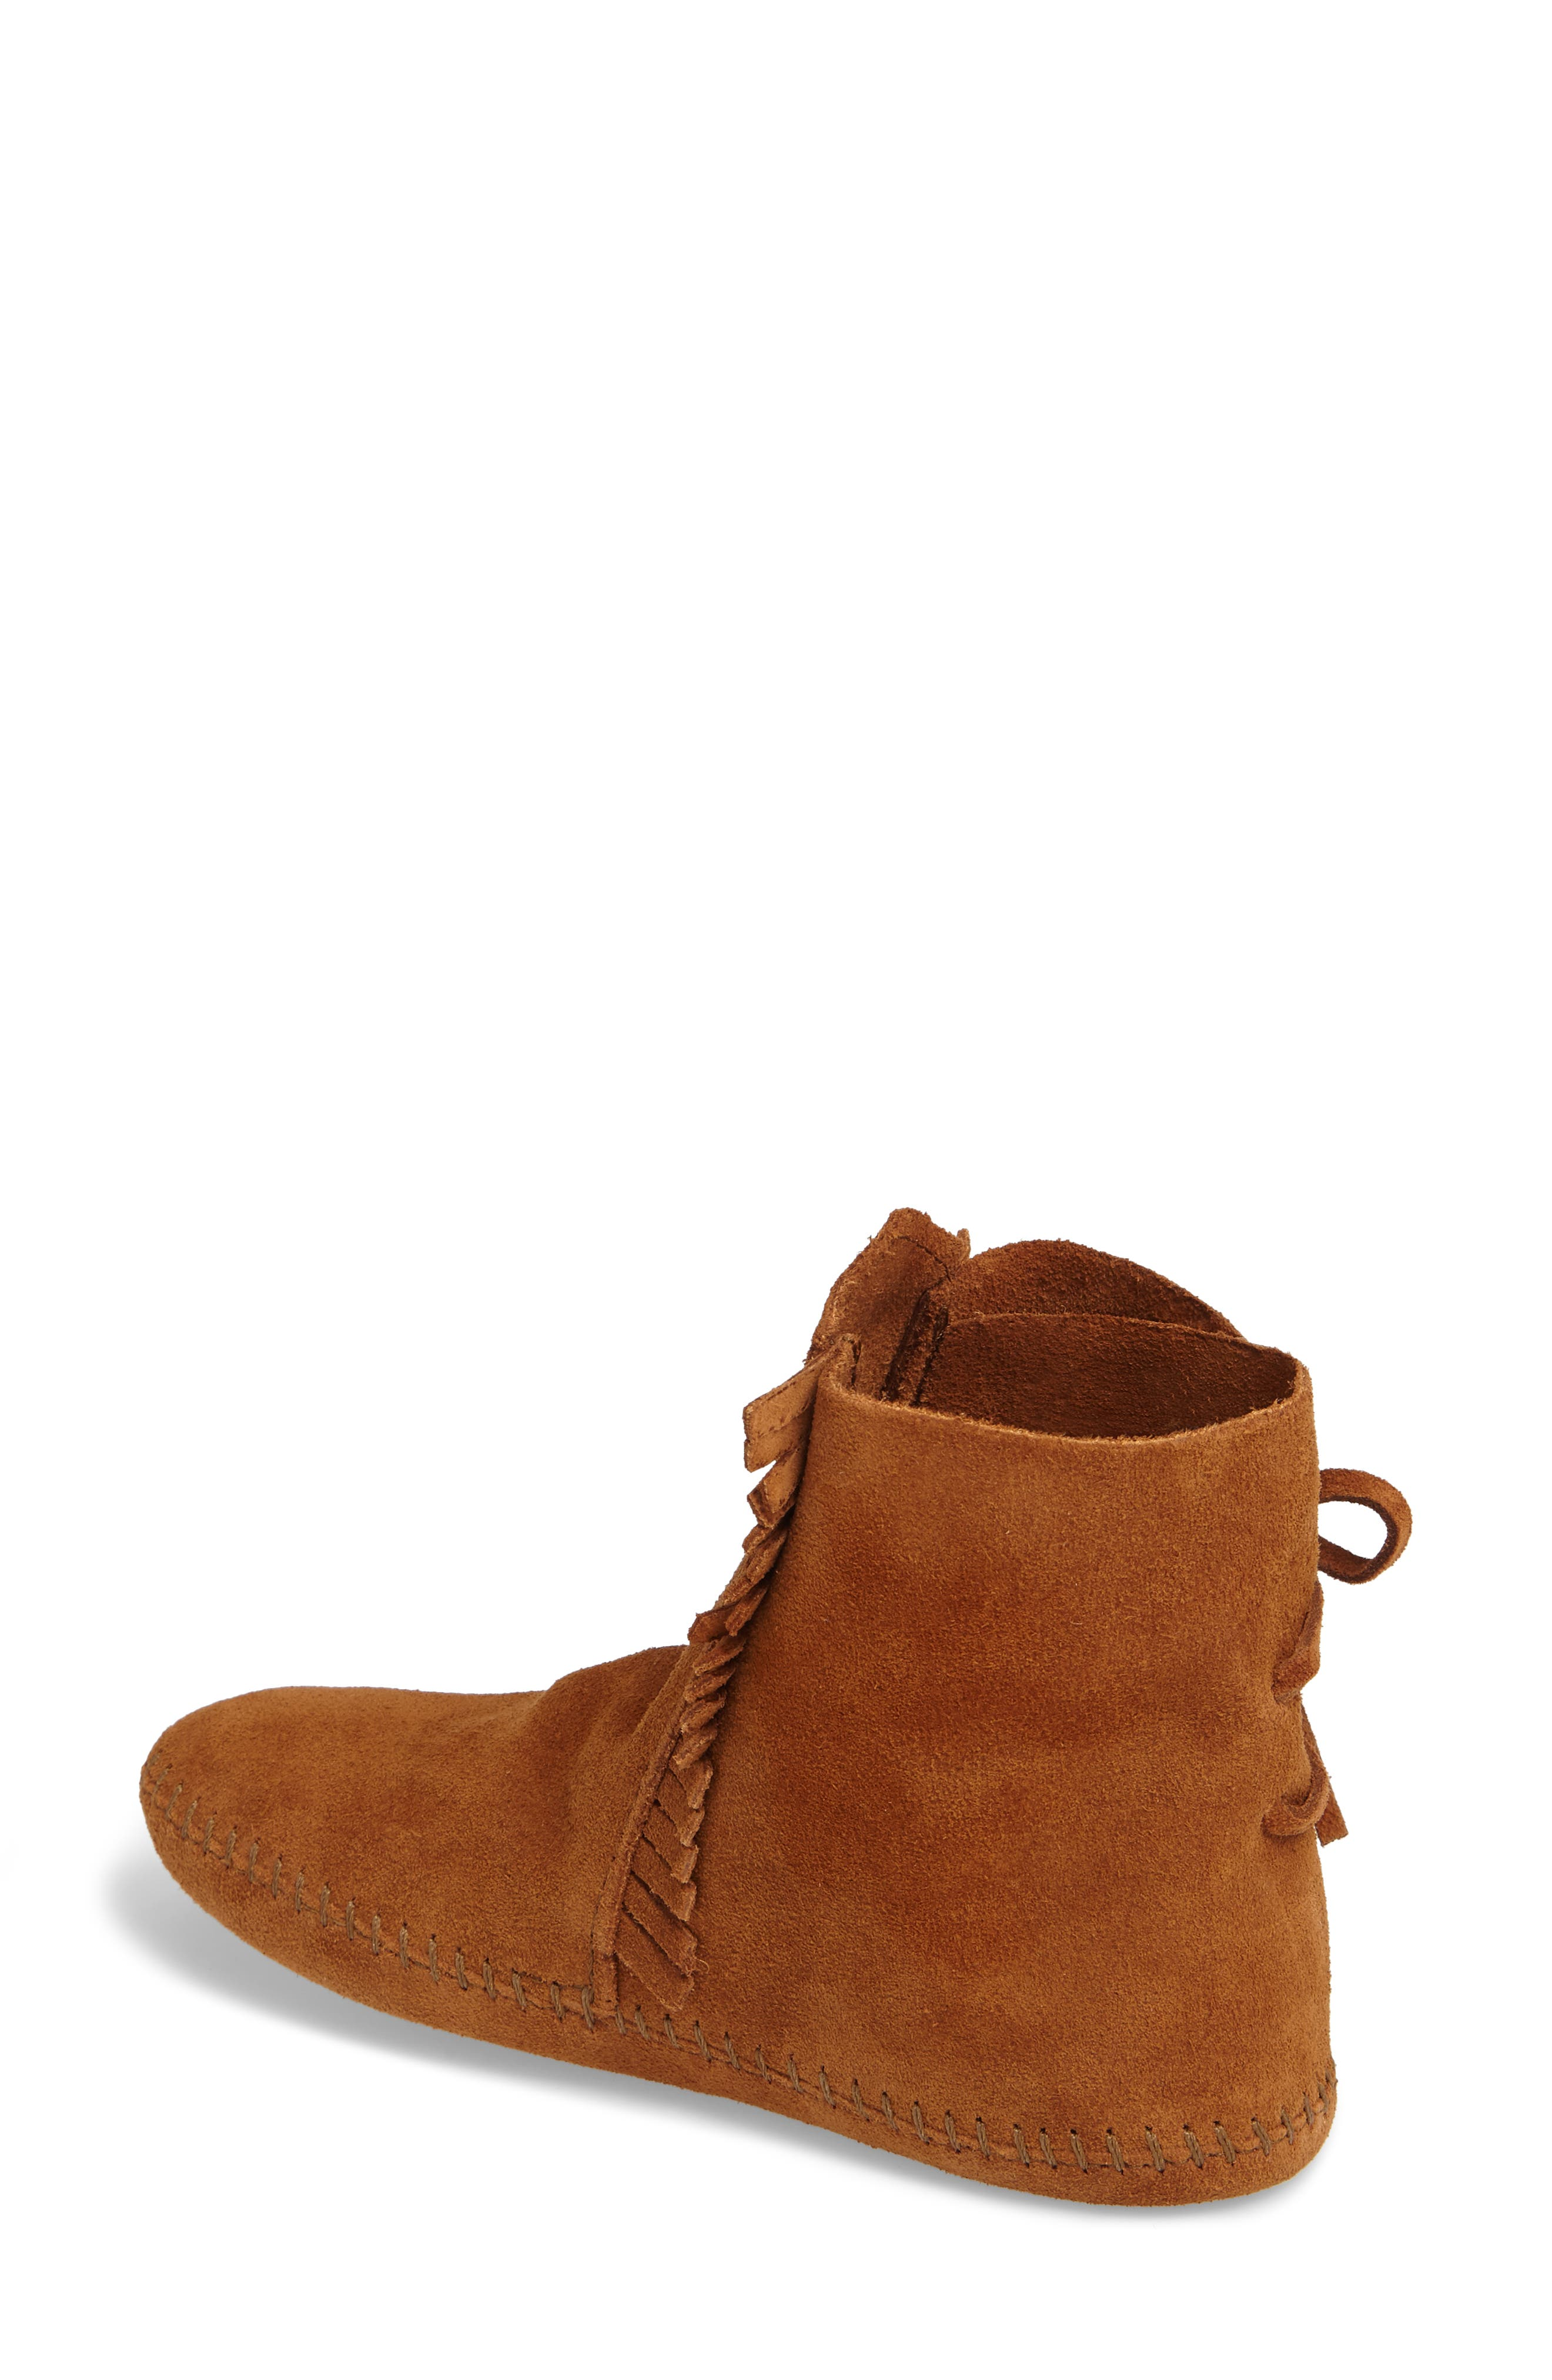 Two-Button Softsole Bootie,                             Alternate thumbnail 2, color,                             211